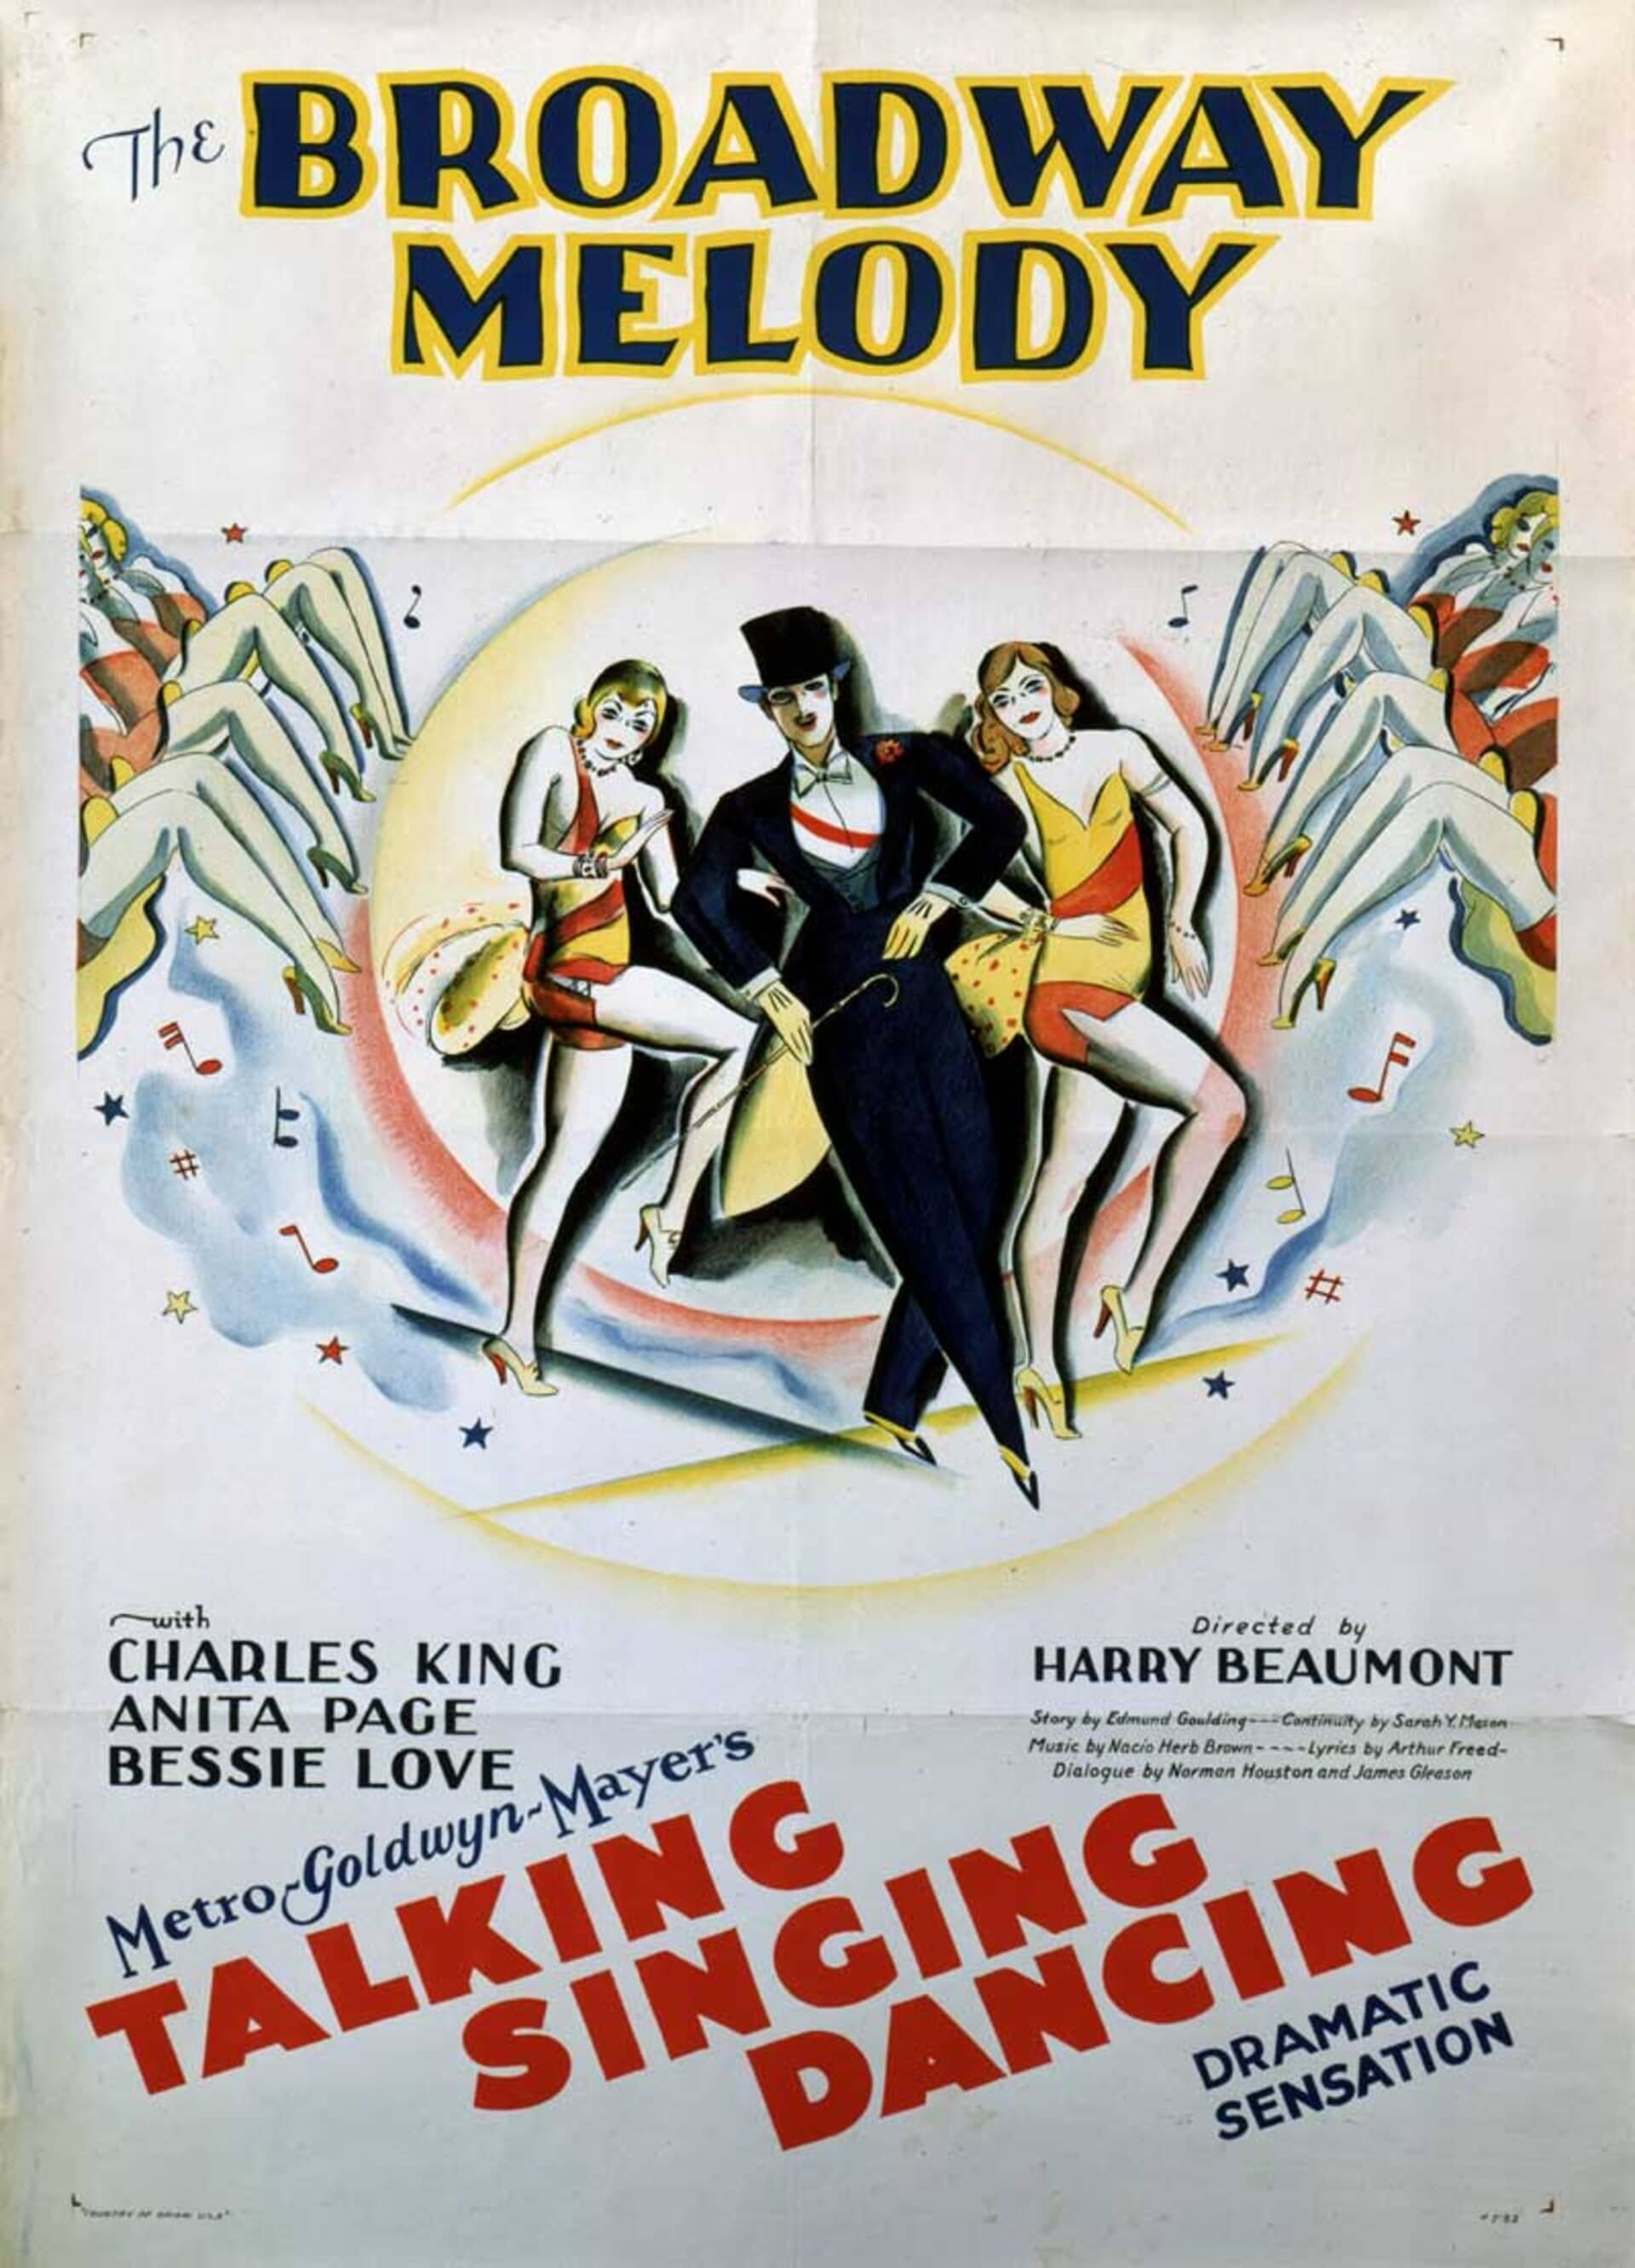 The Broadway Melody of 1929 - Poster 2